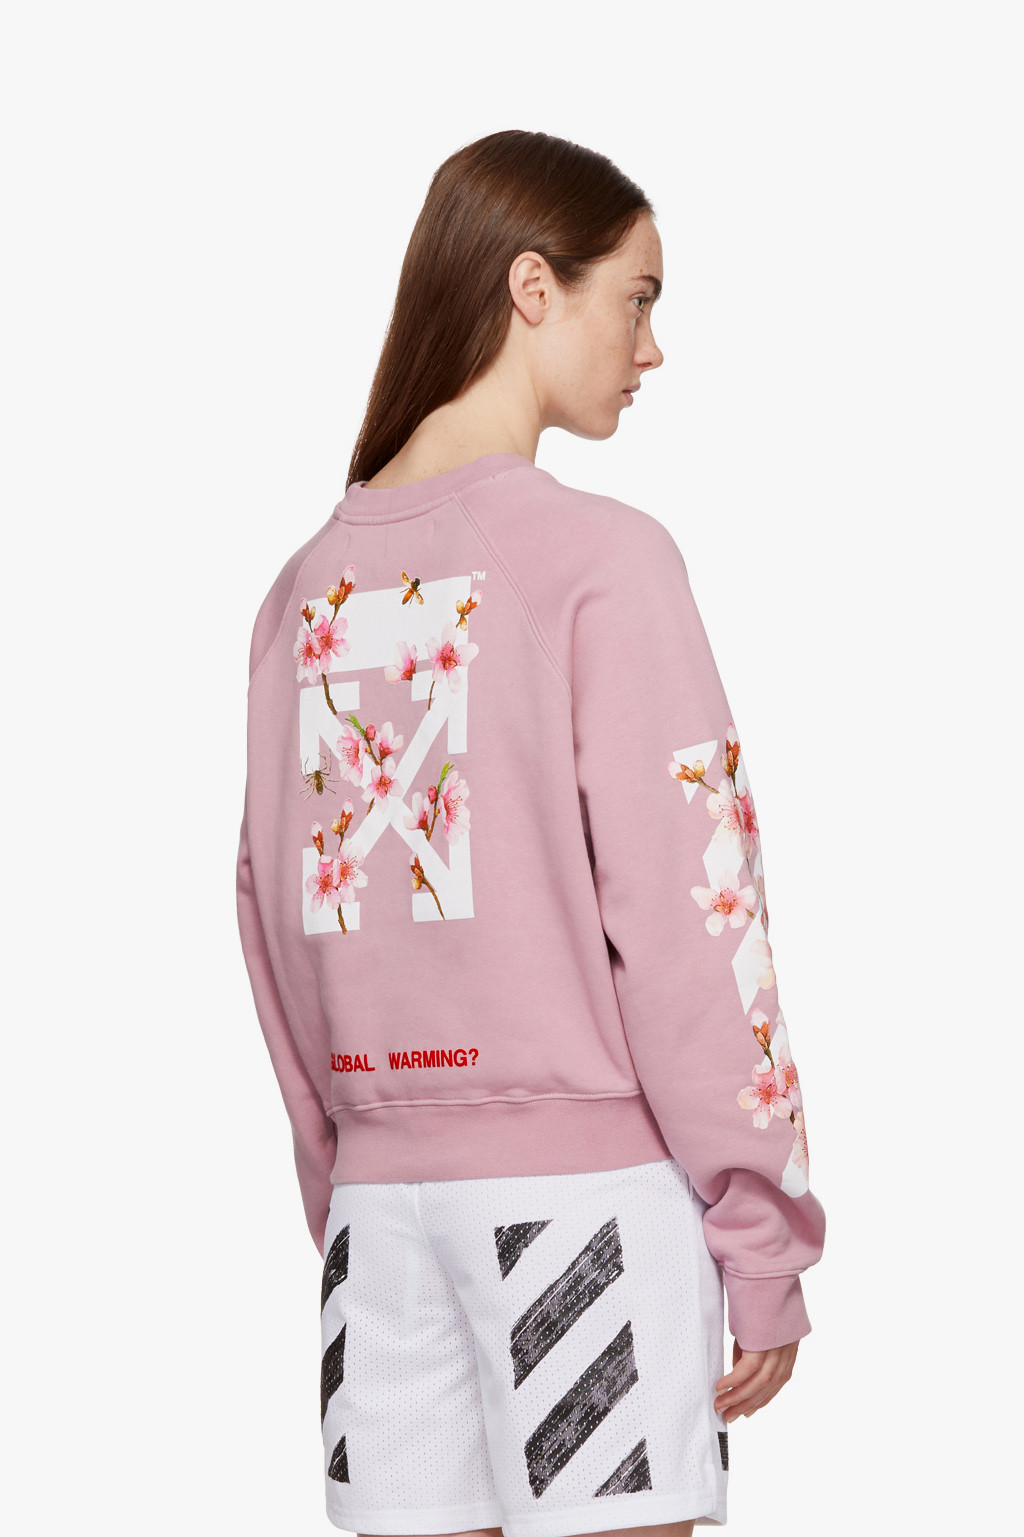 Cherry Blossom Hoodie in Pink